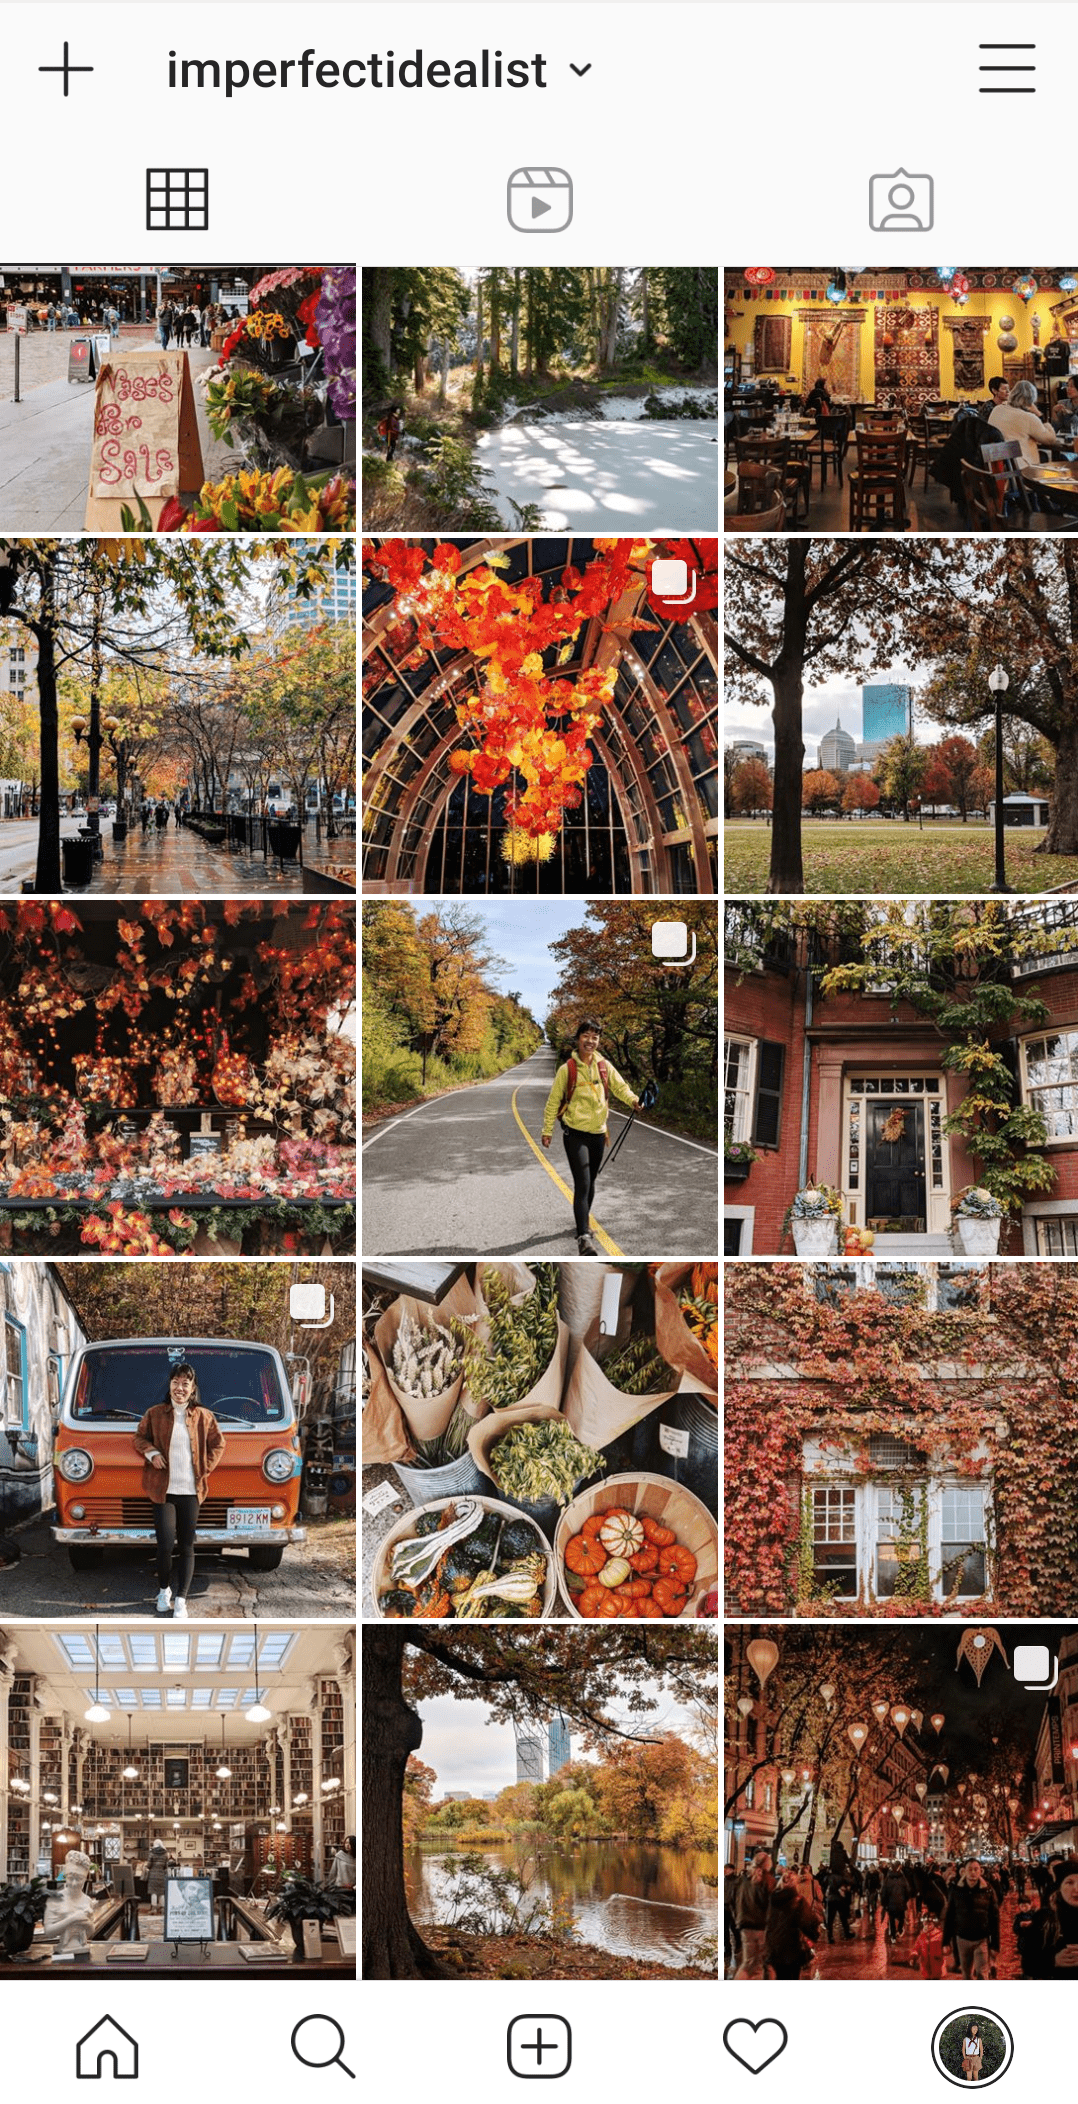 Screenshot of my Instagram feed from last fall